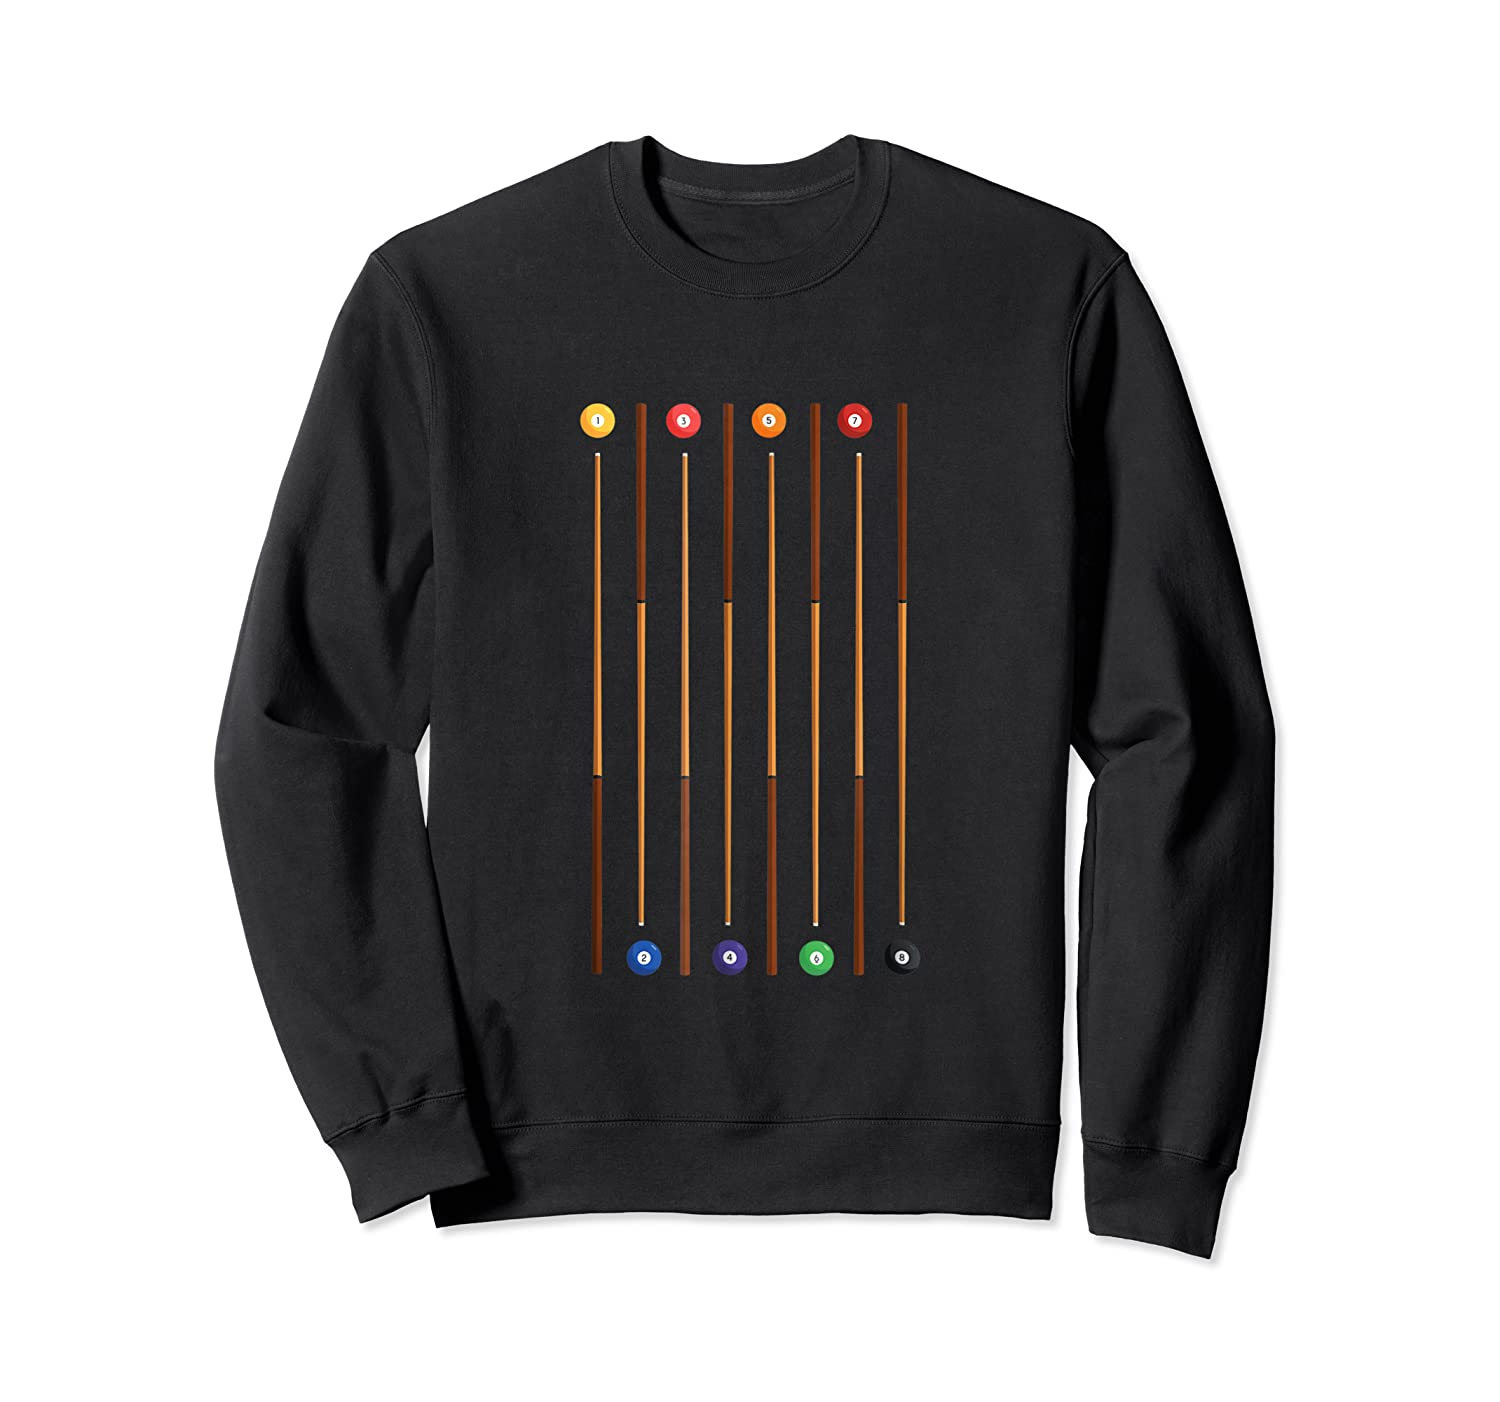 Biliard Cue Stick And 8 Pool Balls Awesome Game Shirts Crewneck Sweater